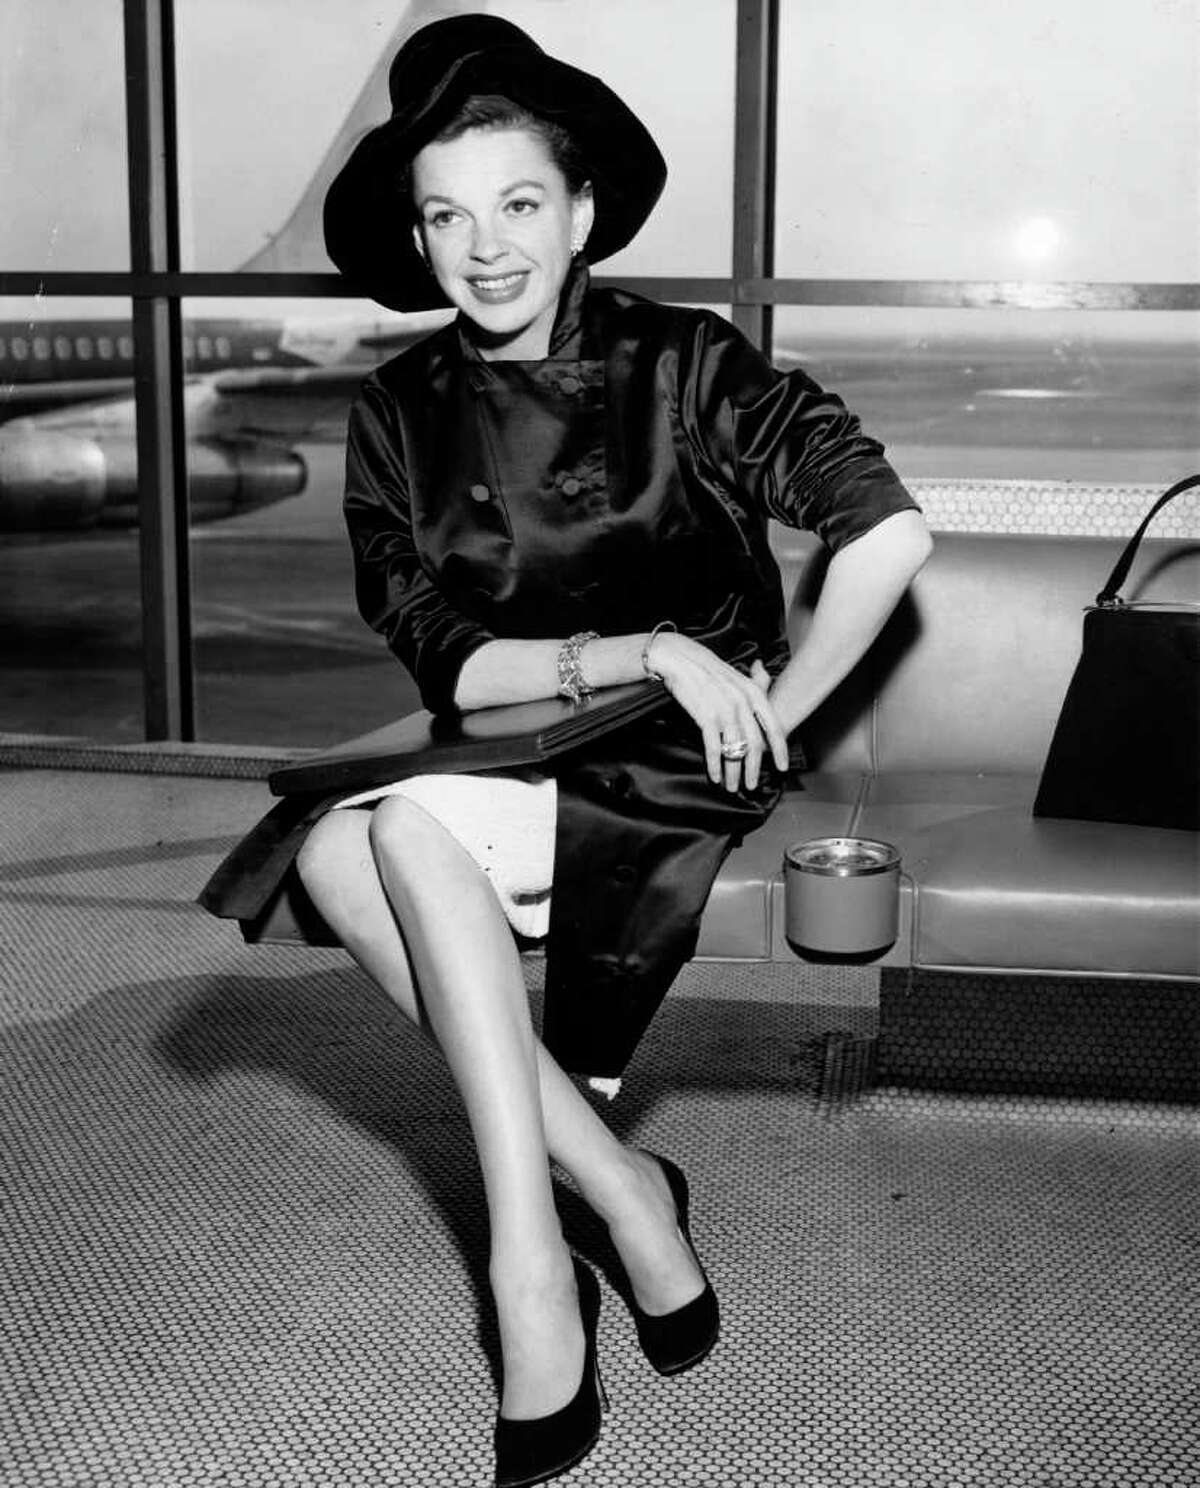 Here's singer and film star Judy Garland at an unidentified airport, circa 1955. Note the ashtray.